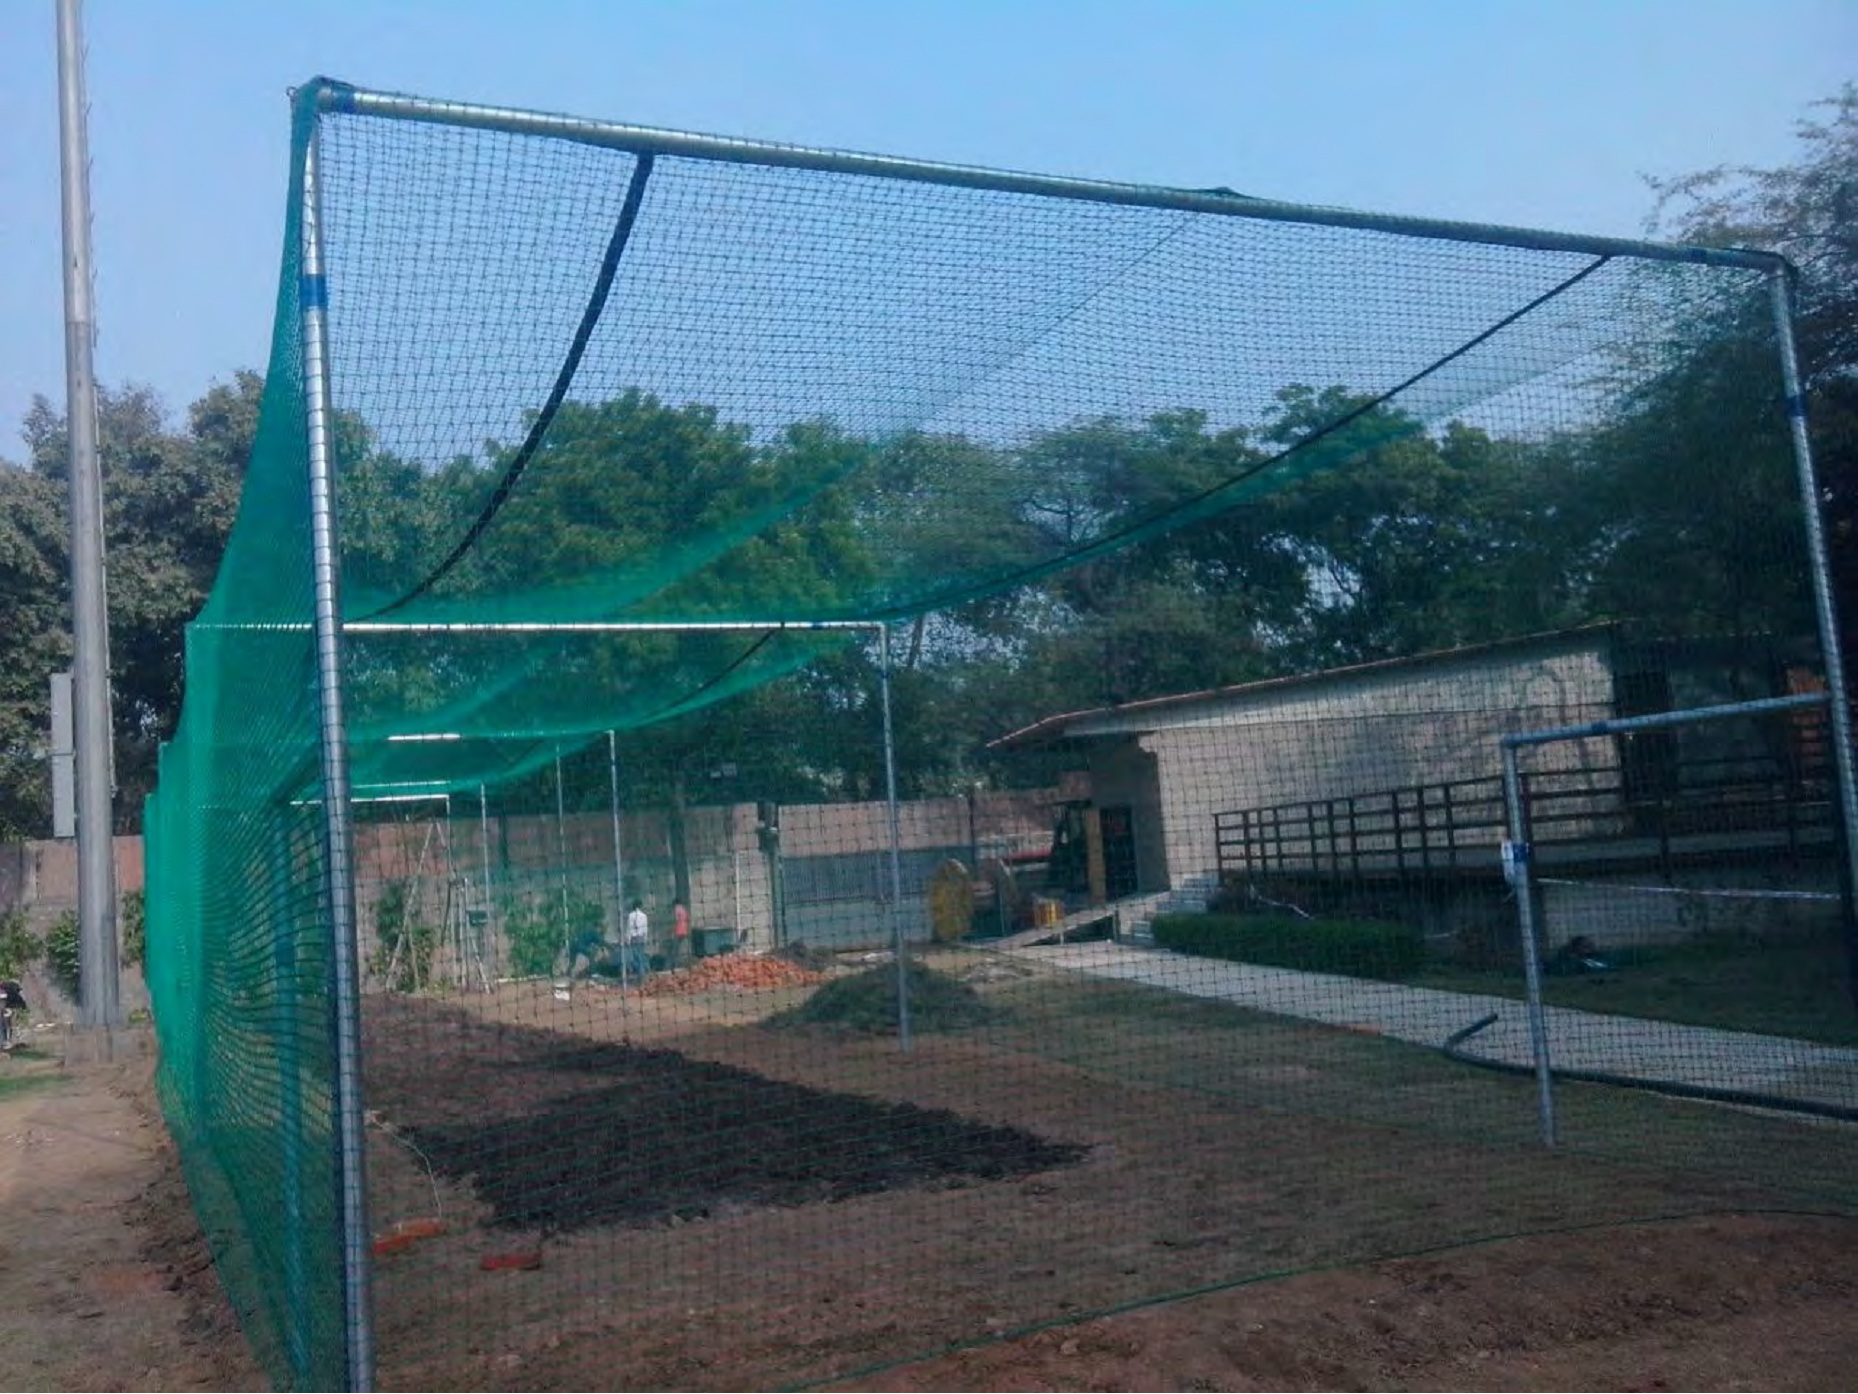 Cricket Net 1 bajajsports